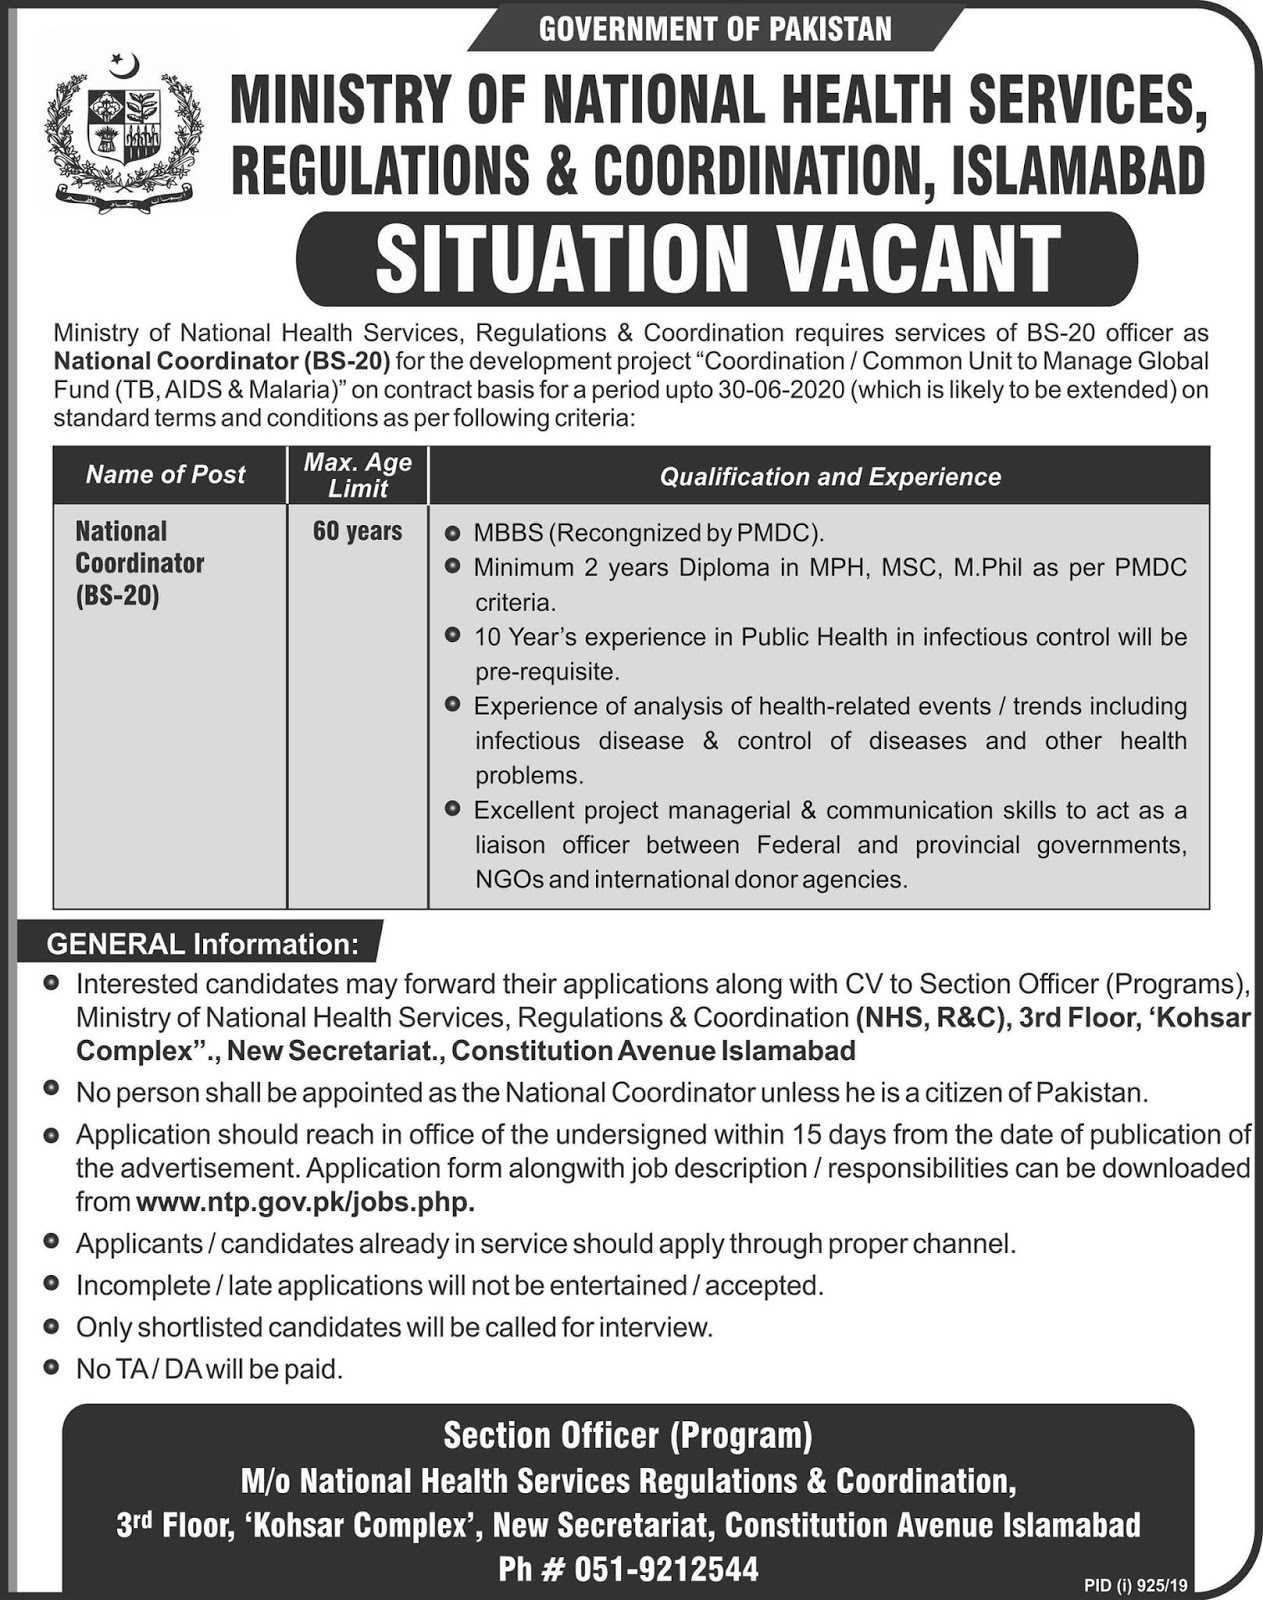 Advertisement for the Ministry of National Health Services Jobs